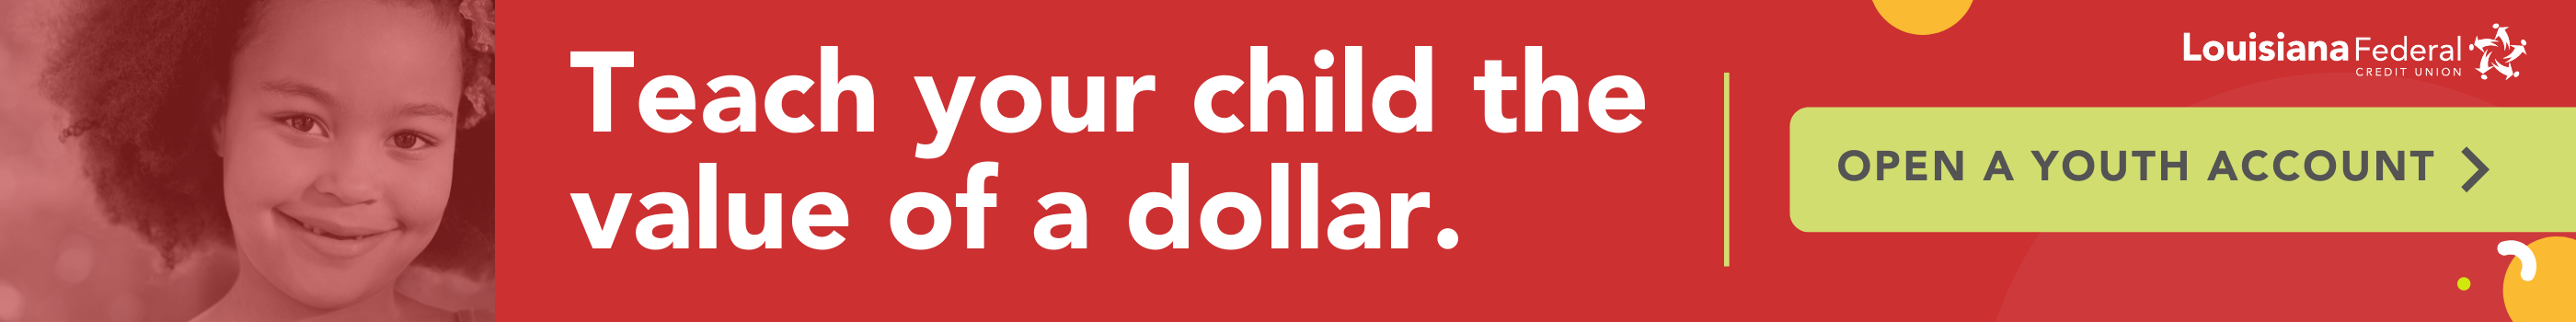 Teach your child the value of a dollar. Open a Youth Account a Louisiana FCU.